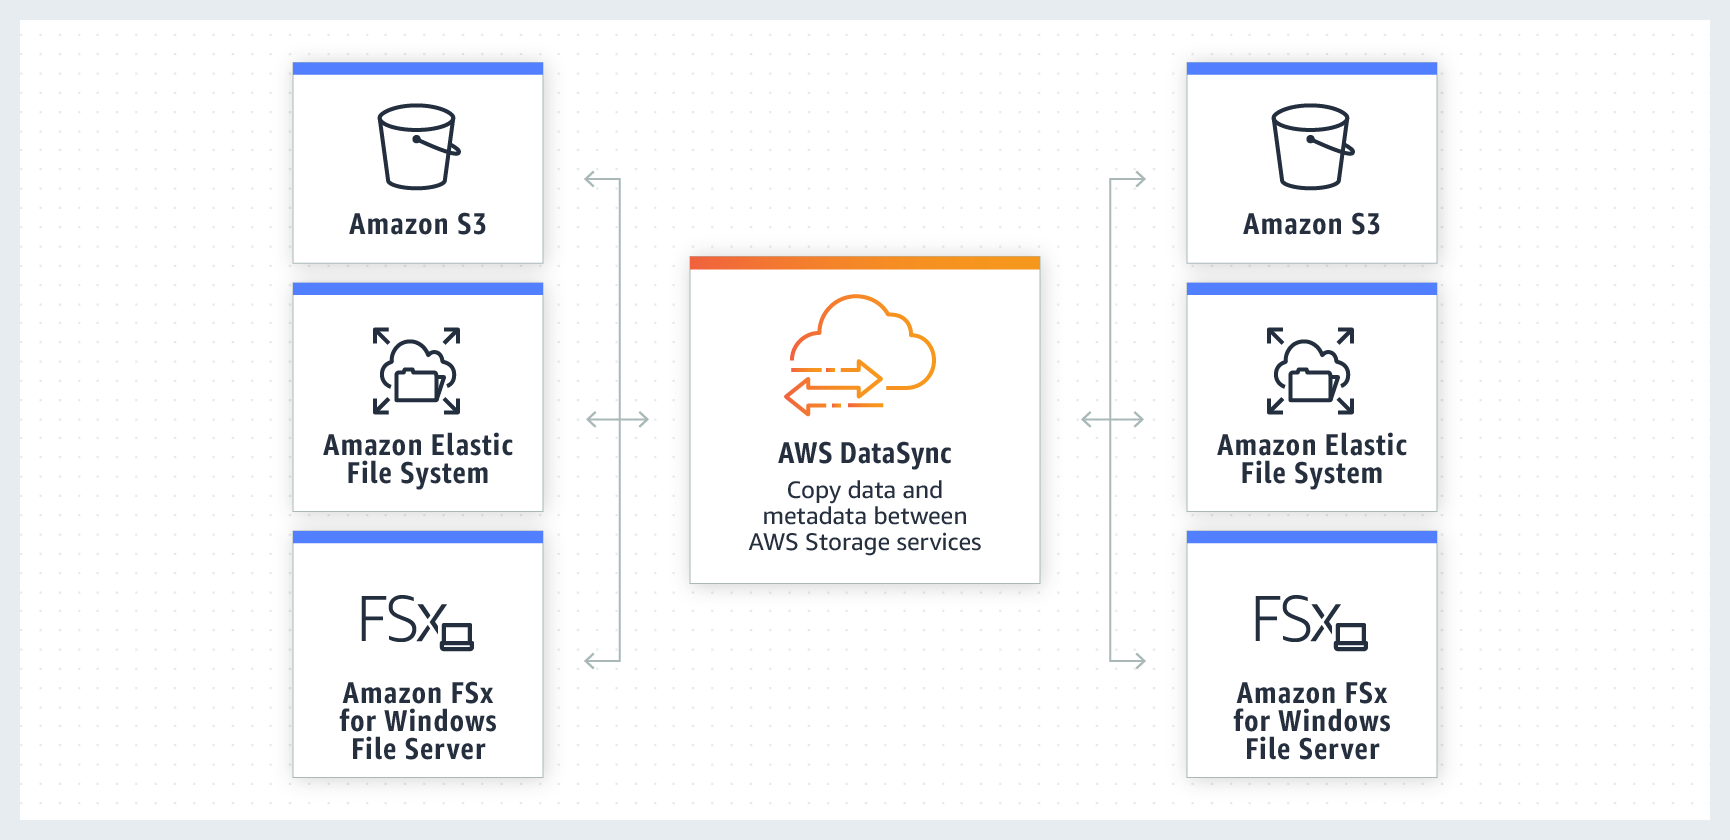 Transfer data between AWS Storage services with AWS DataSync